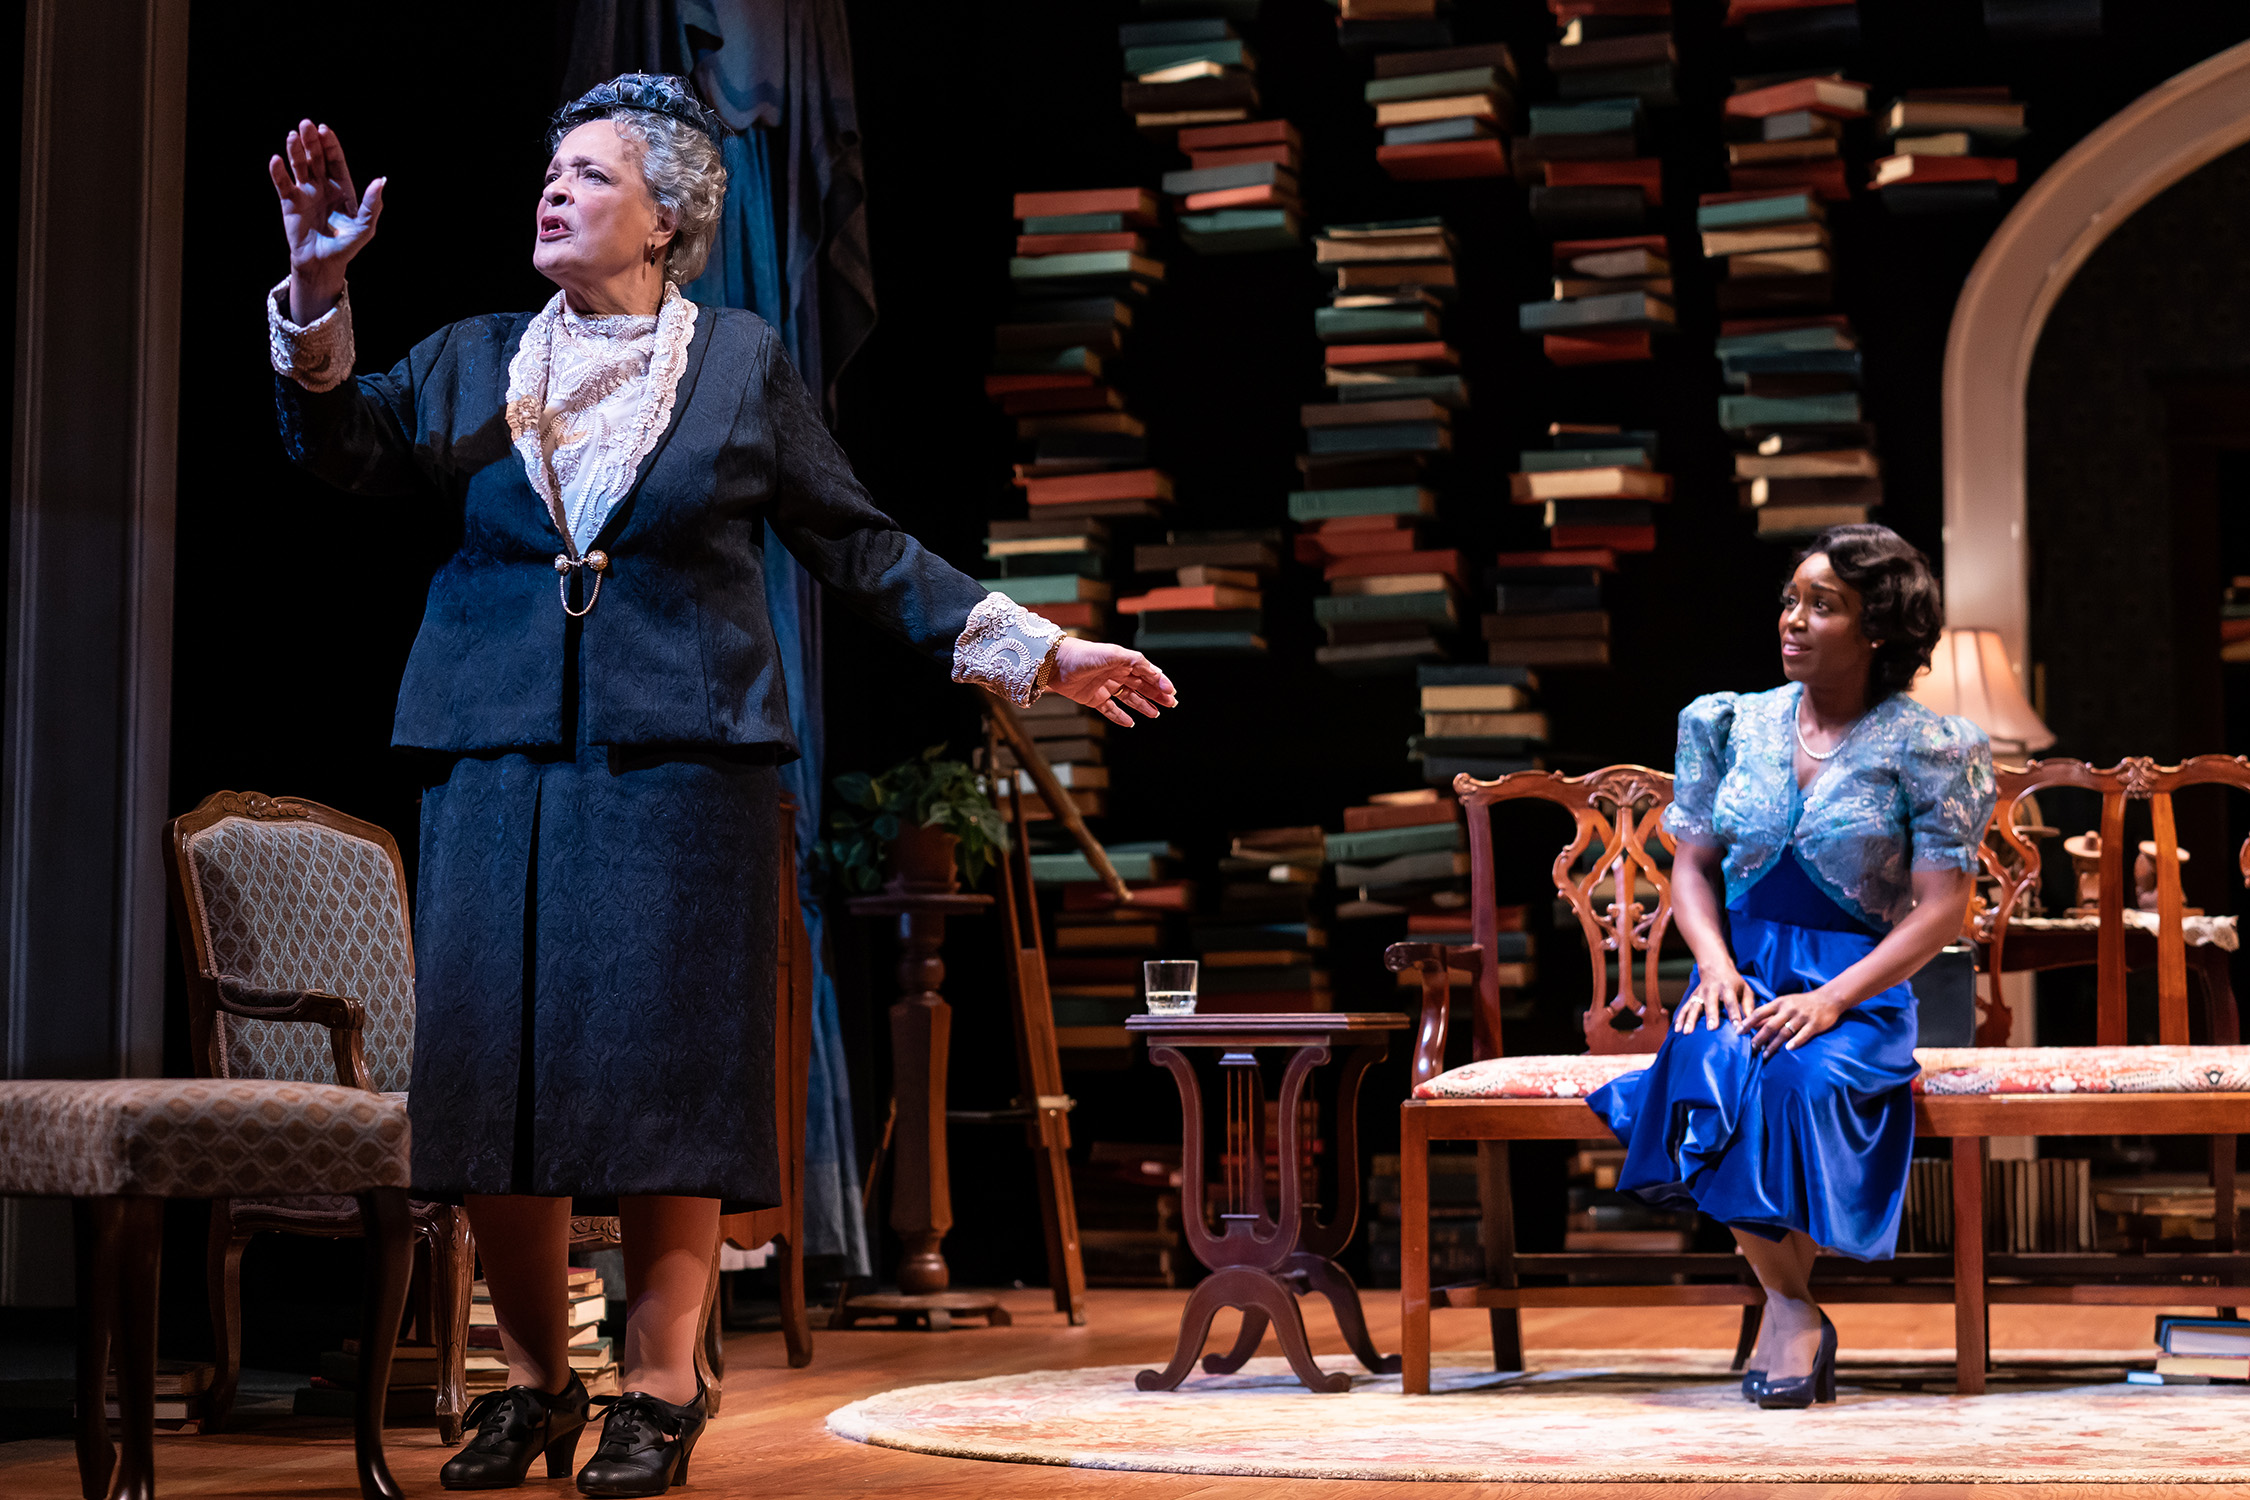 """Franchelle Steward Dorn as Mary Church Terrell and Felicia Curry as Marian Anderson in the Ford's Theatre production of Deborah Brevoort's """"My Lord, What a Night"""". (Photo by Scott Suchman)"""